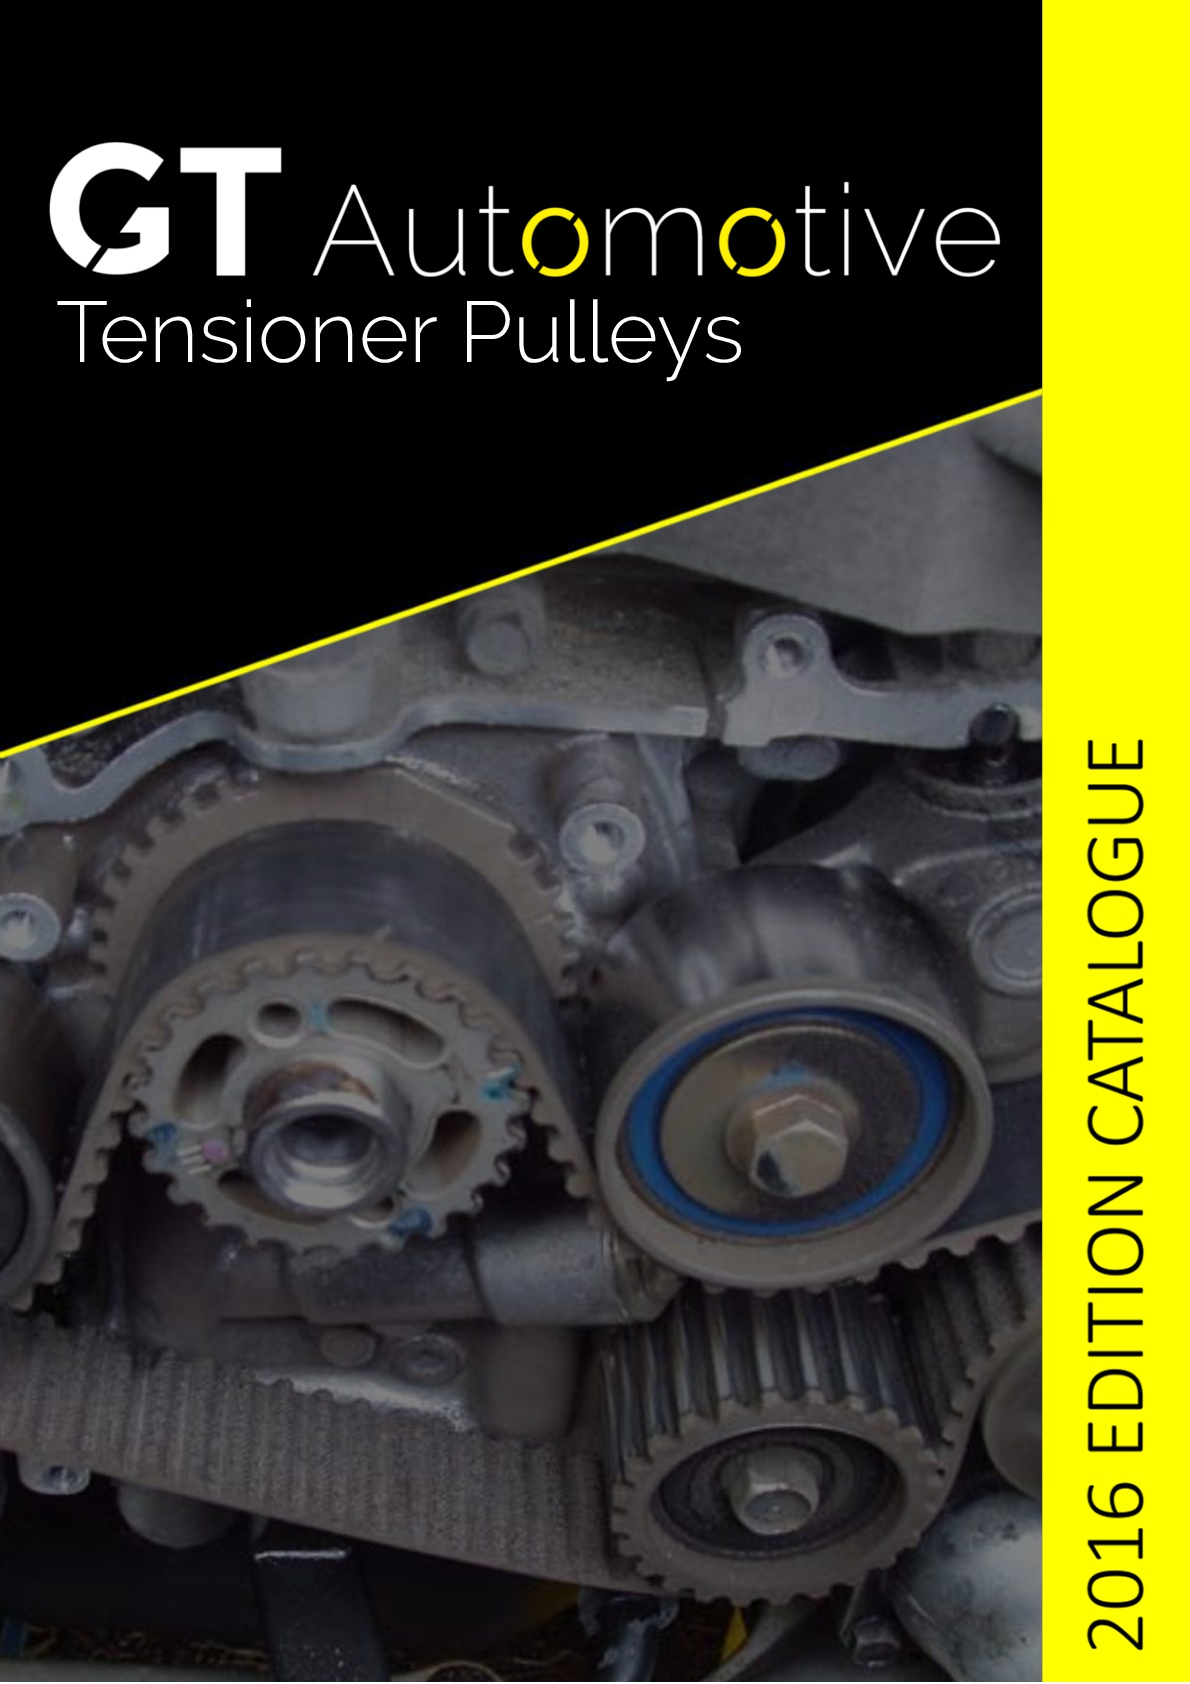 Tensioner-Pulley-Catalogue-Cover-2016-001